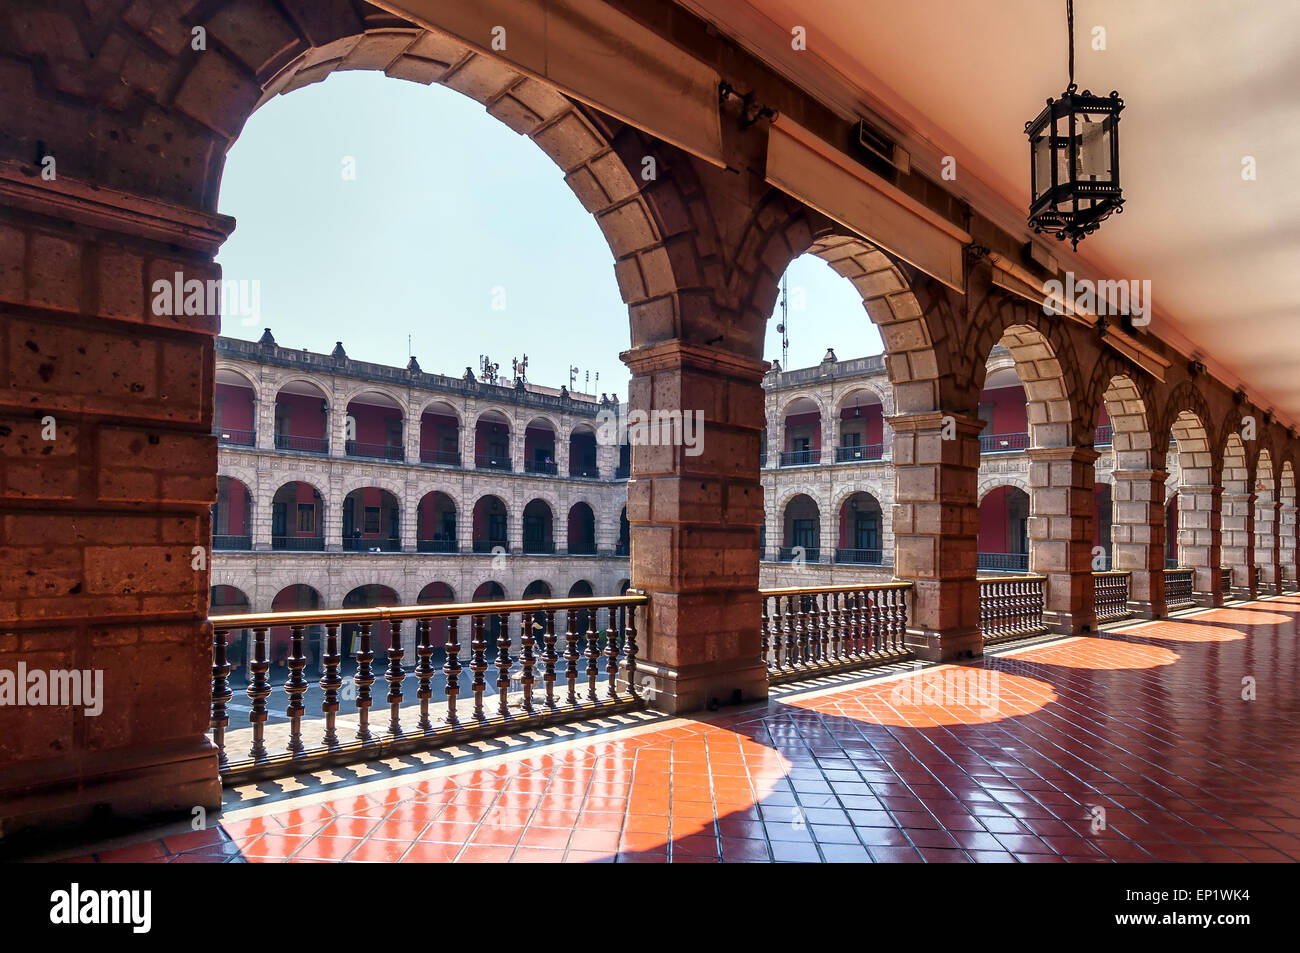 National Palace in Mexico City, Mexico - Stock Image